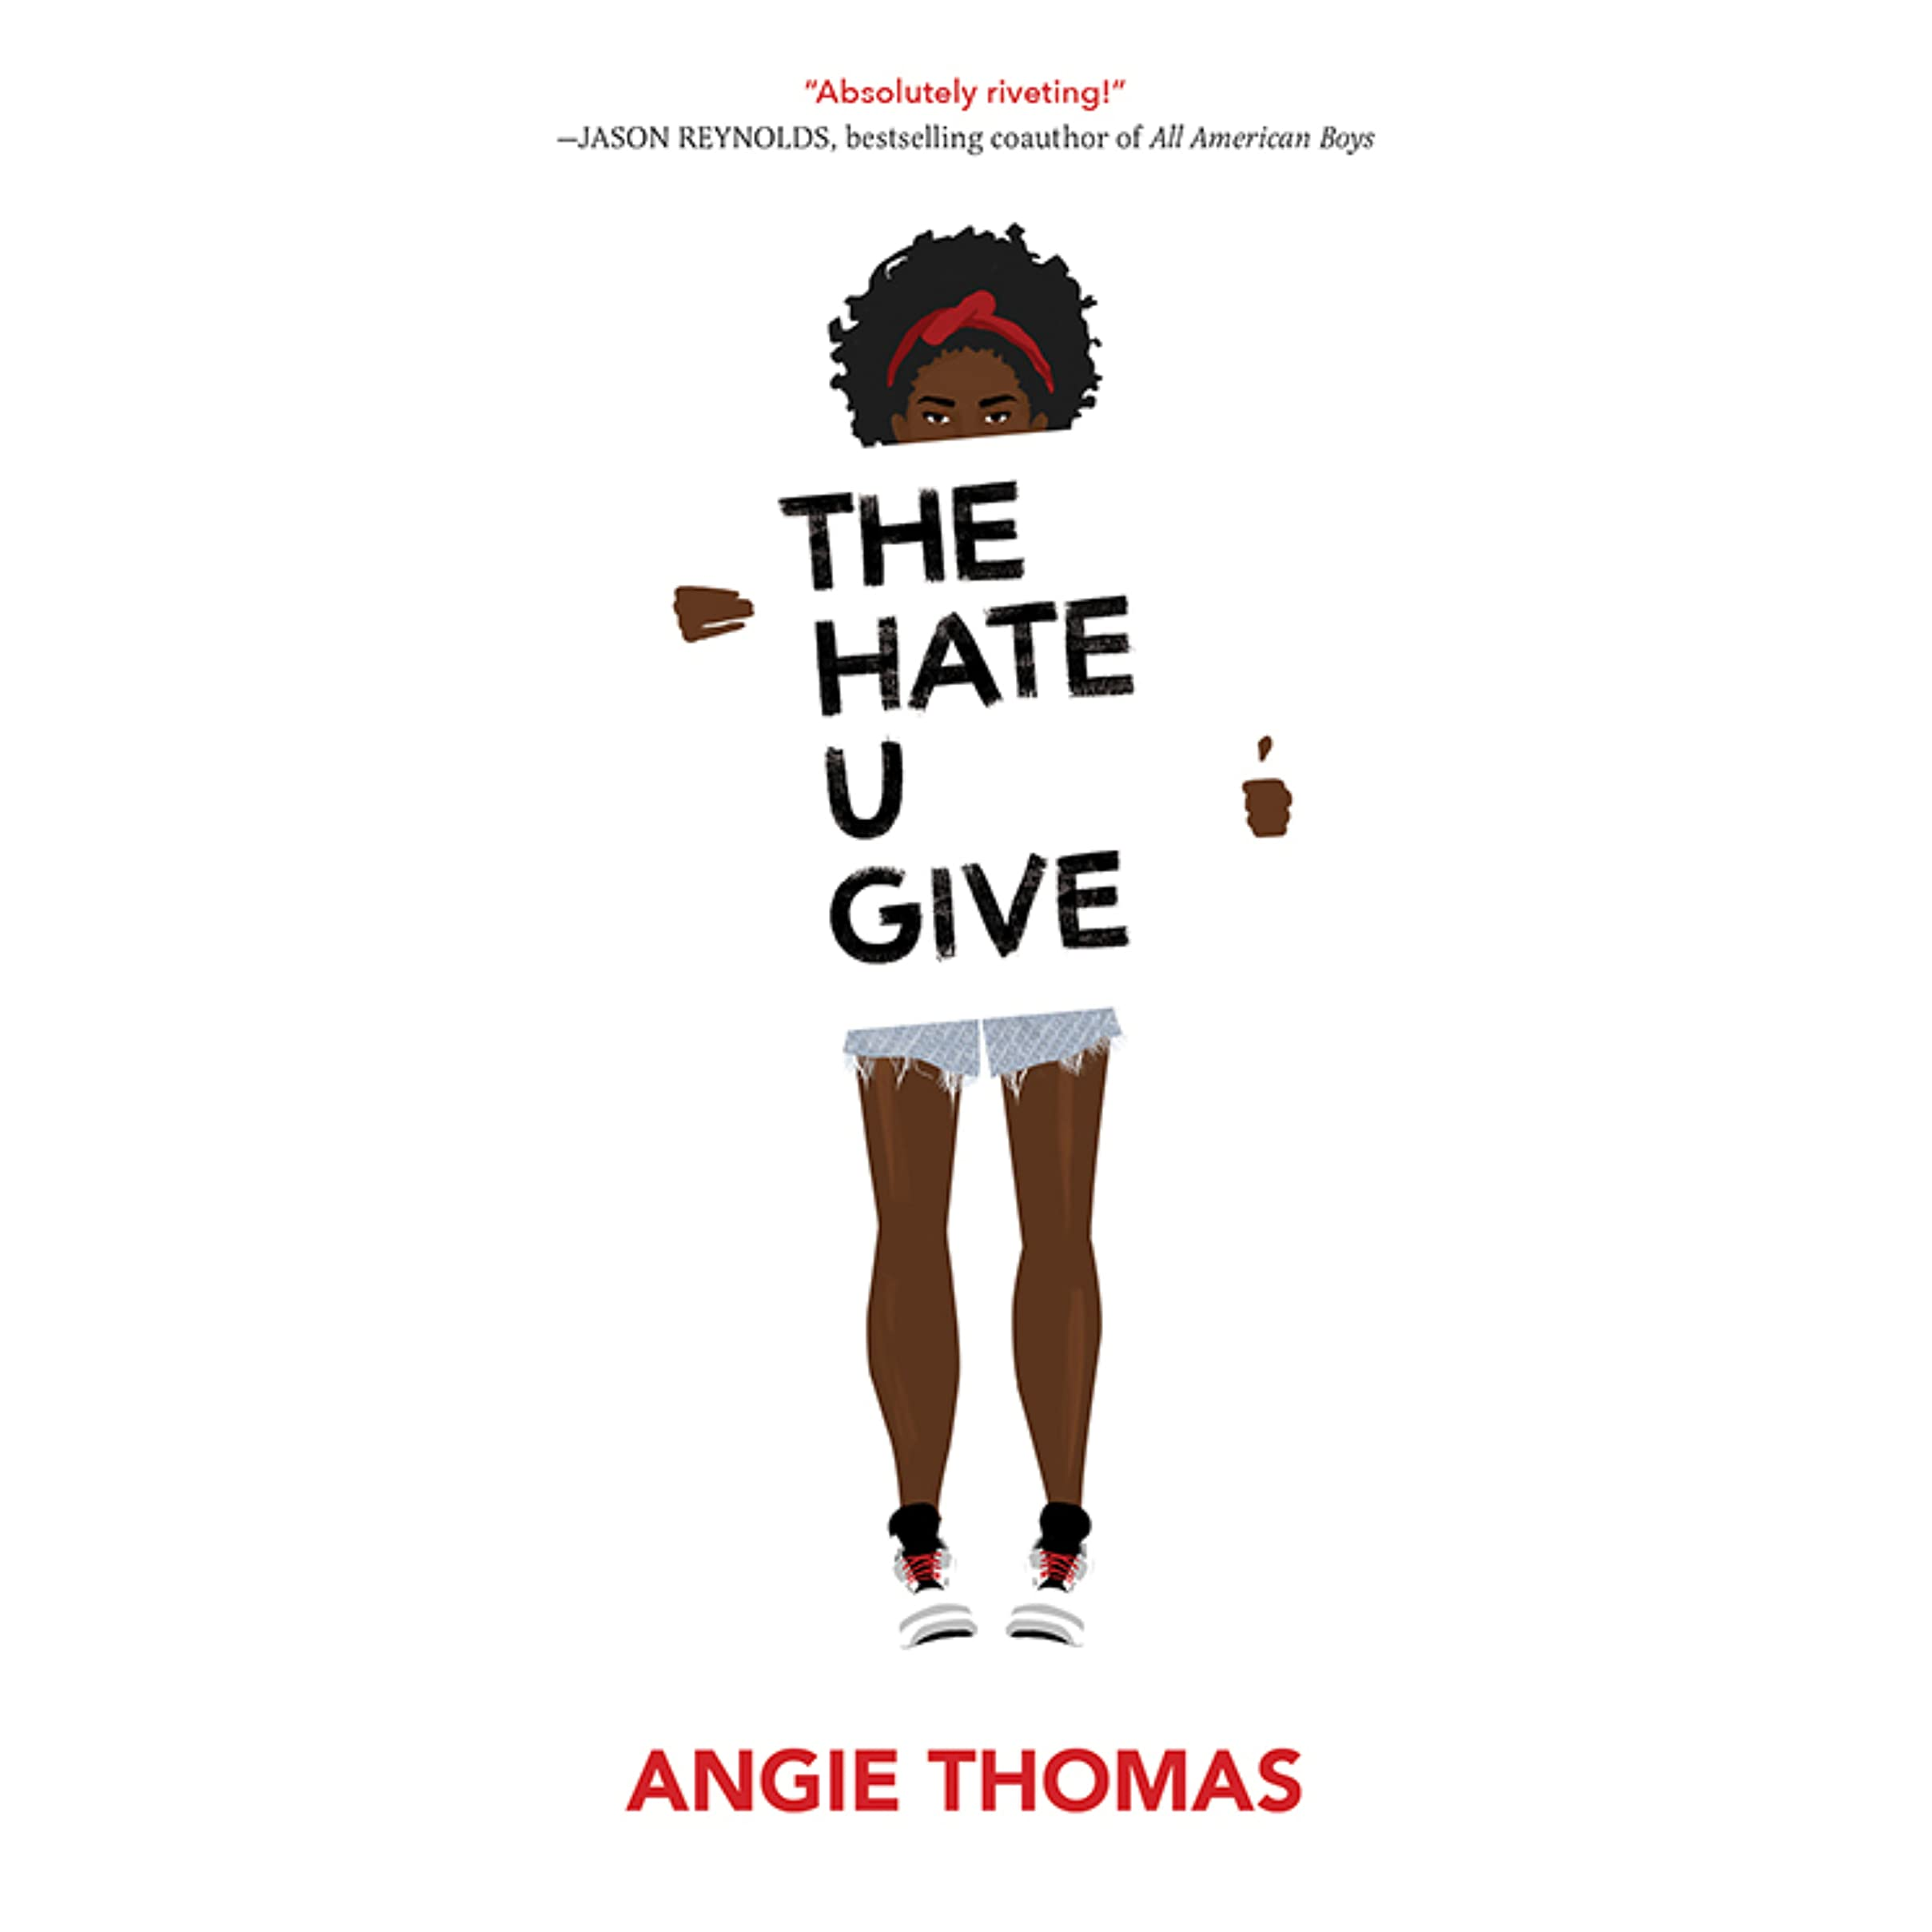 Como Descargar Libros En Goodreads The Hate U Give By Angie Thomas